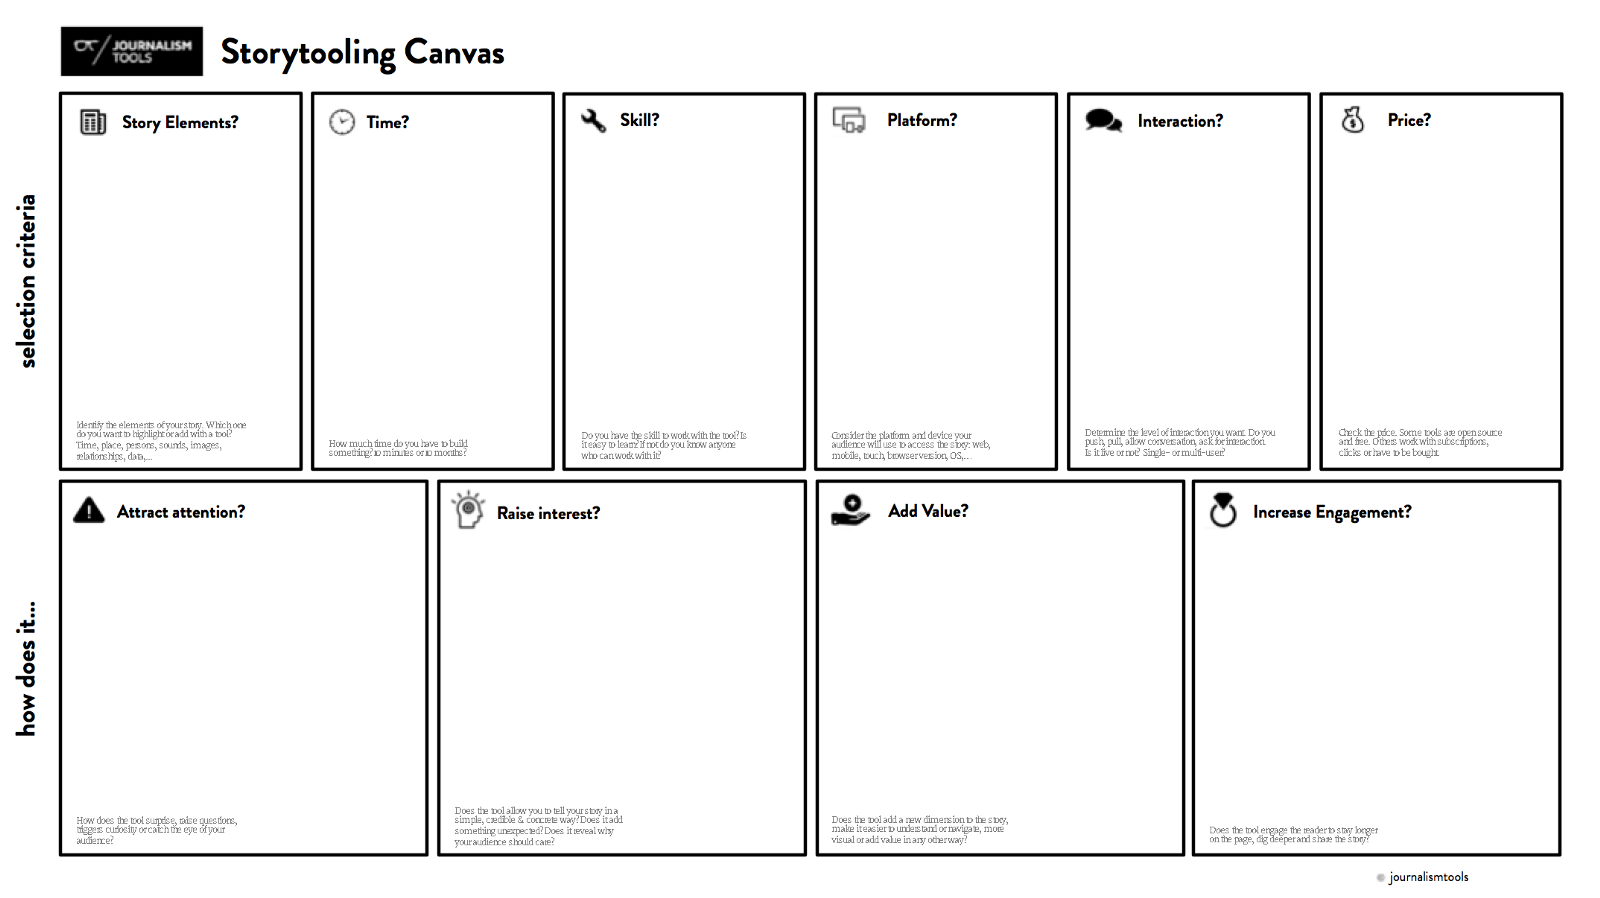 Canvas Introducing The Storytooling Canvas Journalism Tools Medium